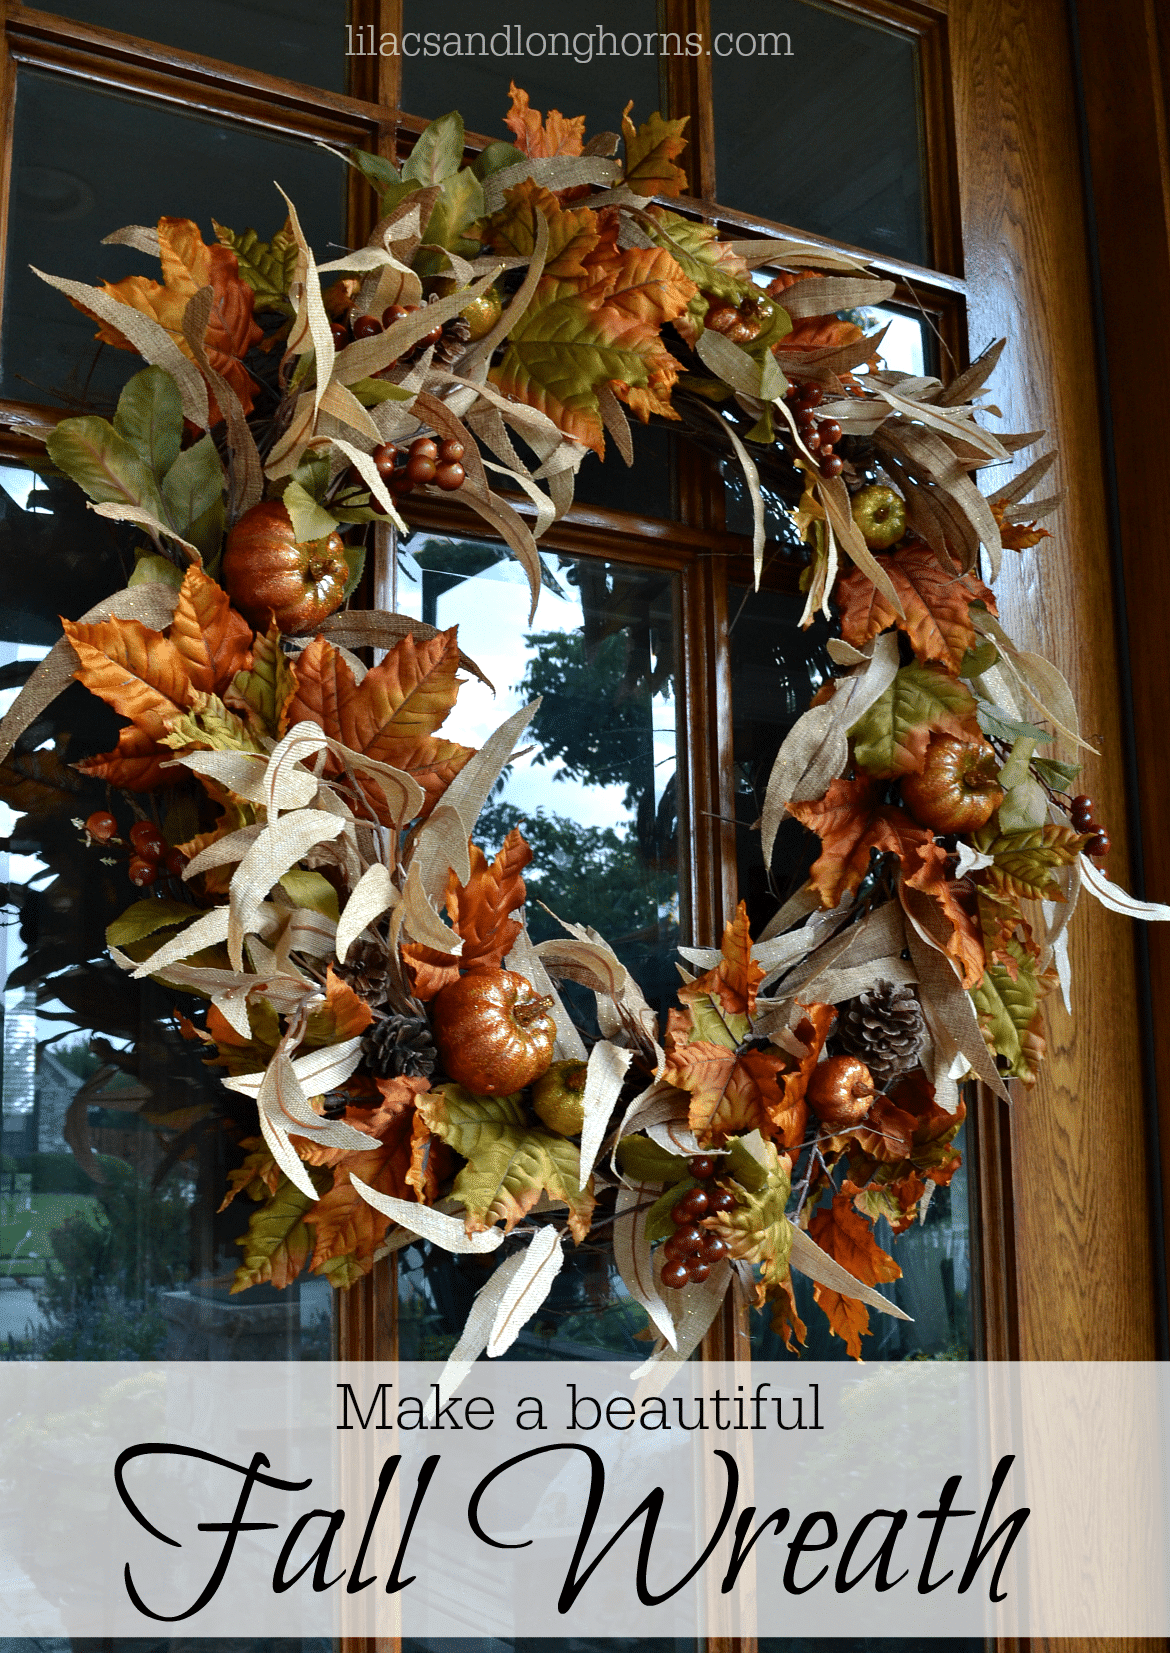 DIY Fall wreath - stunning!